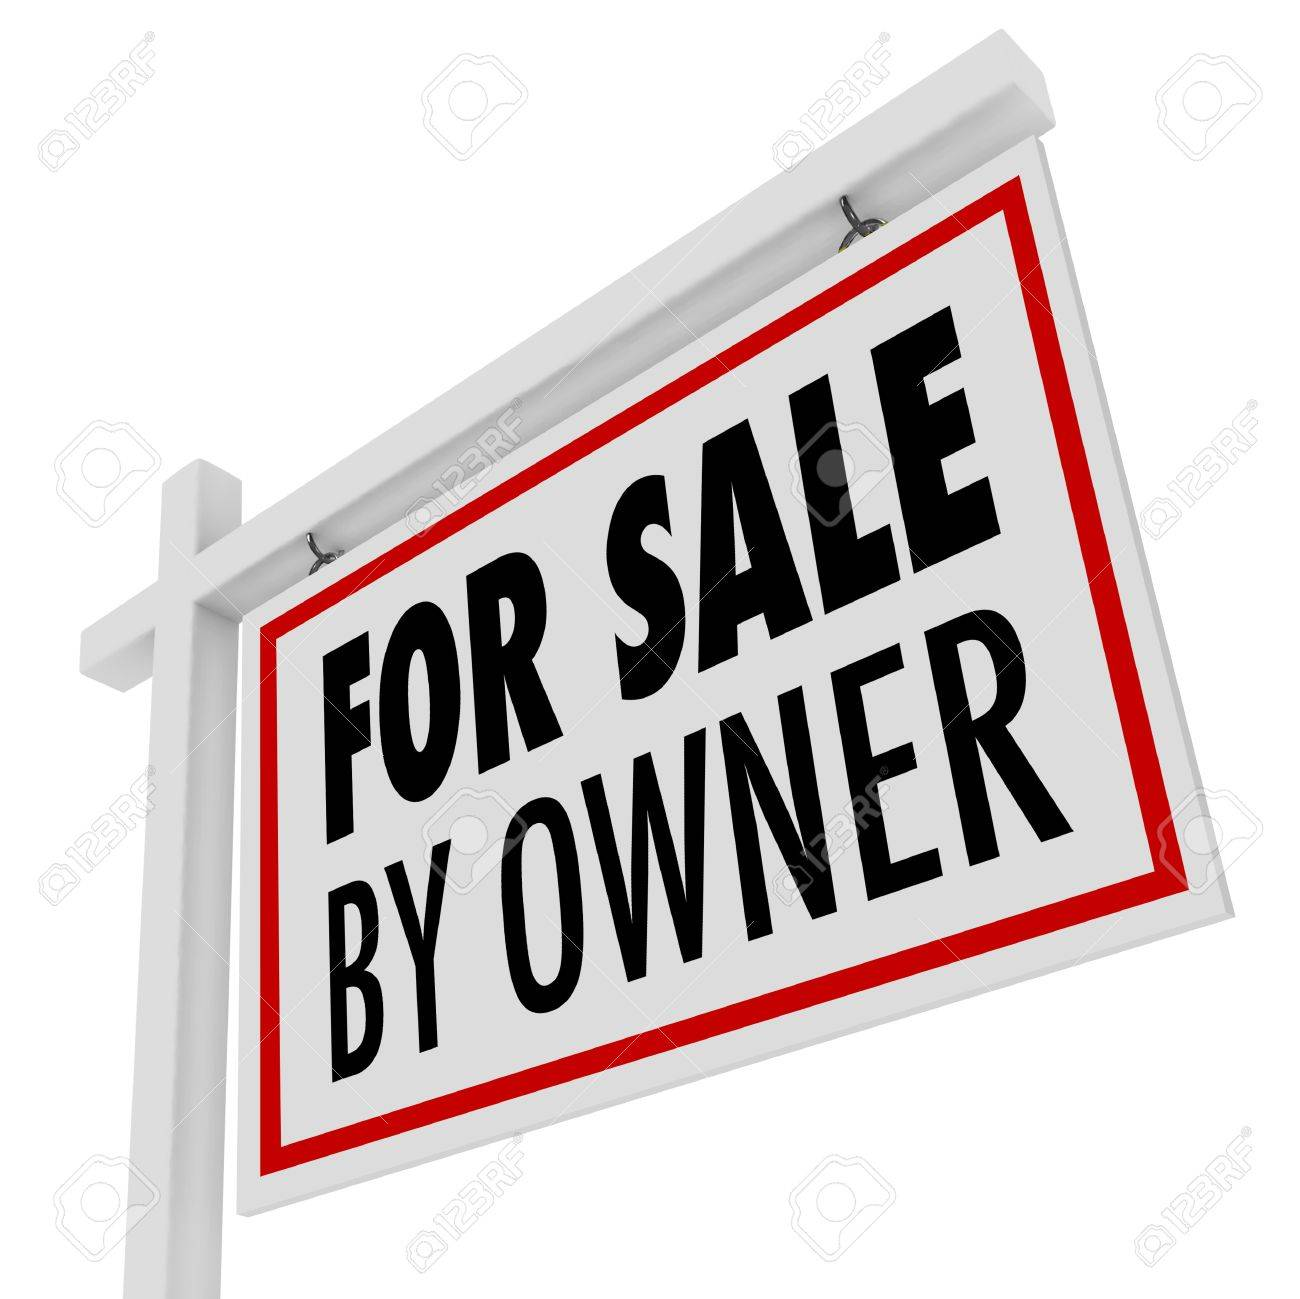 the words for sale by owner on a home or house for sale sign stock